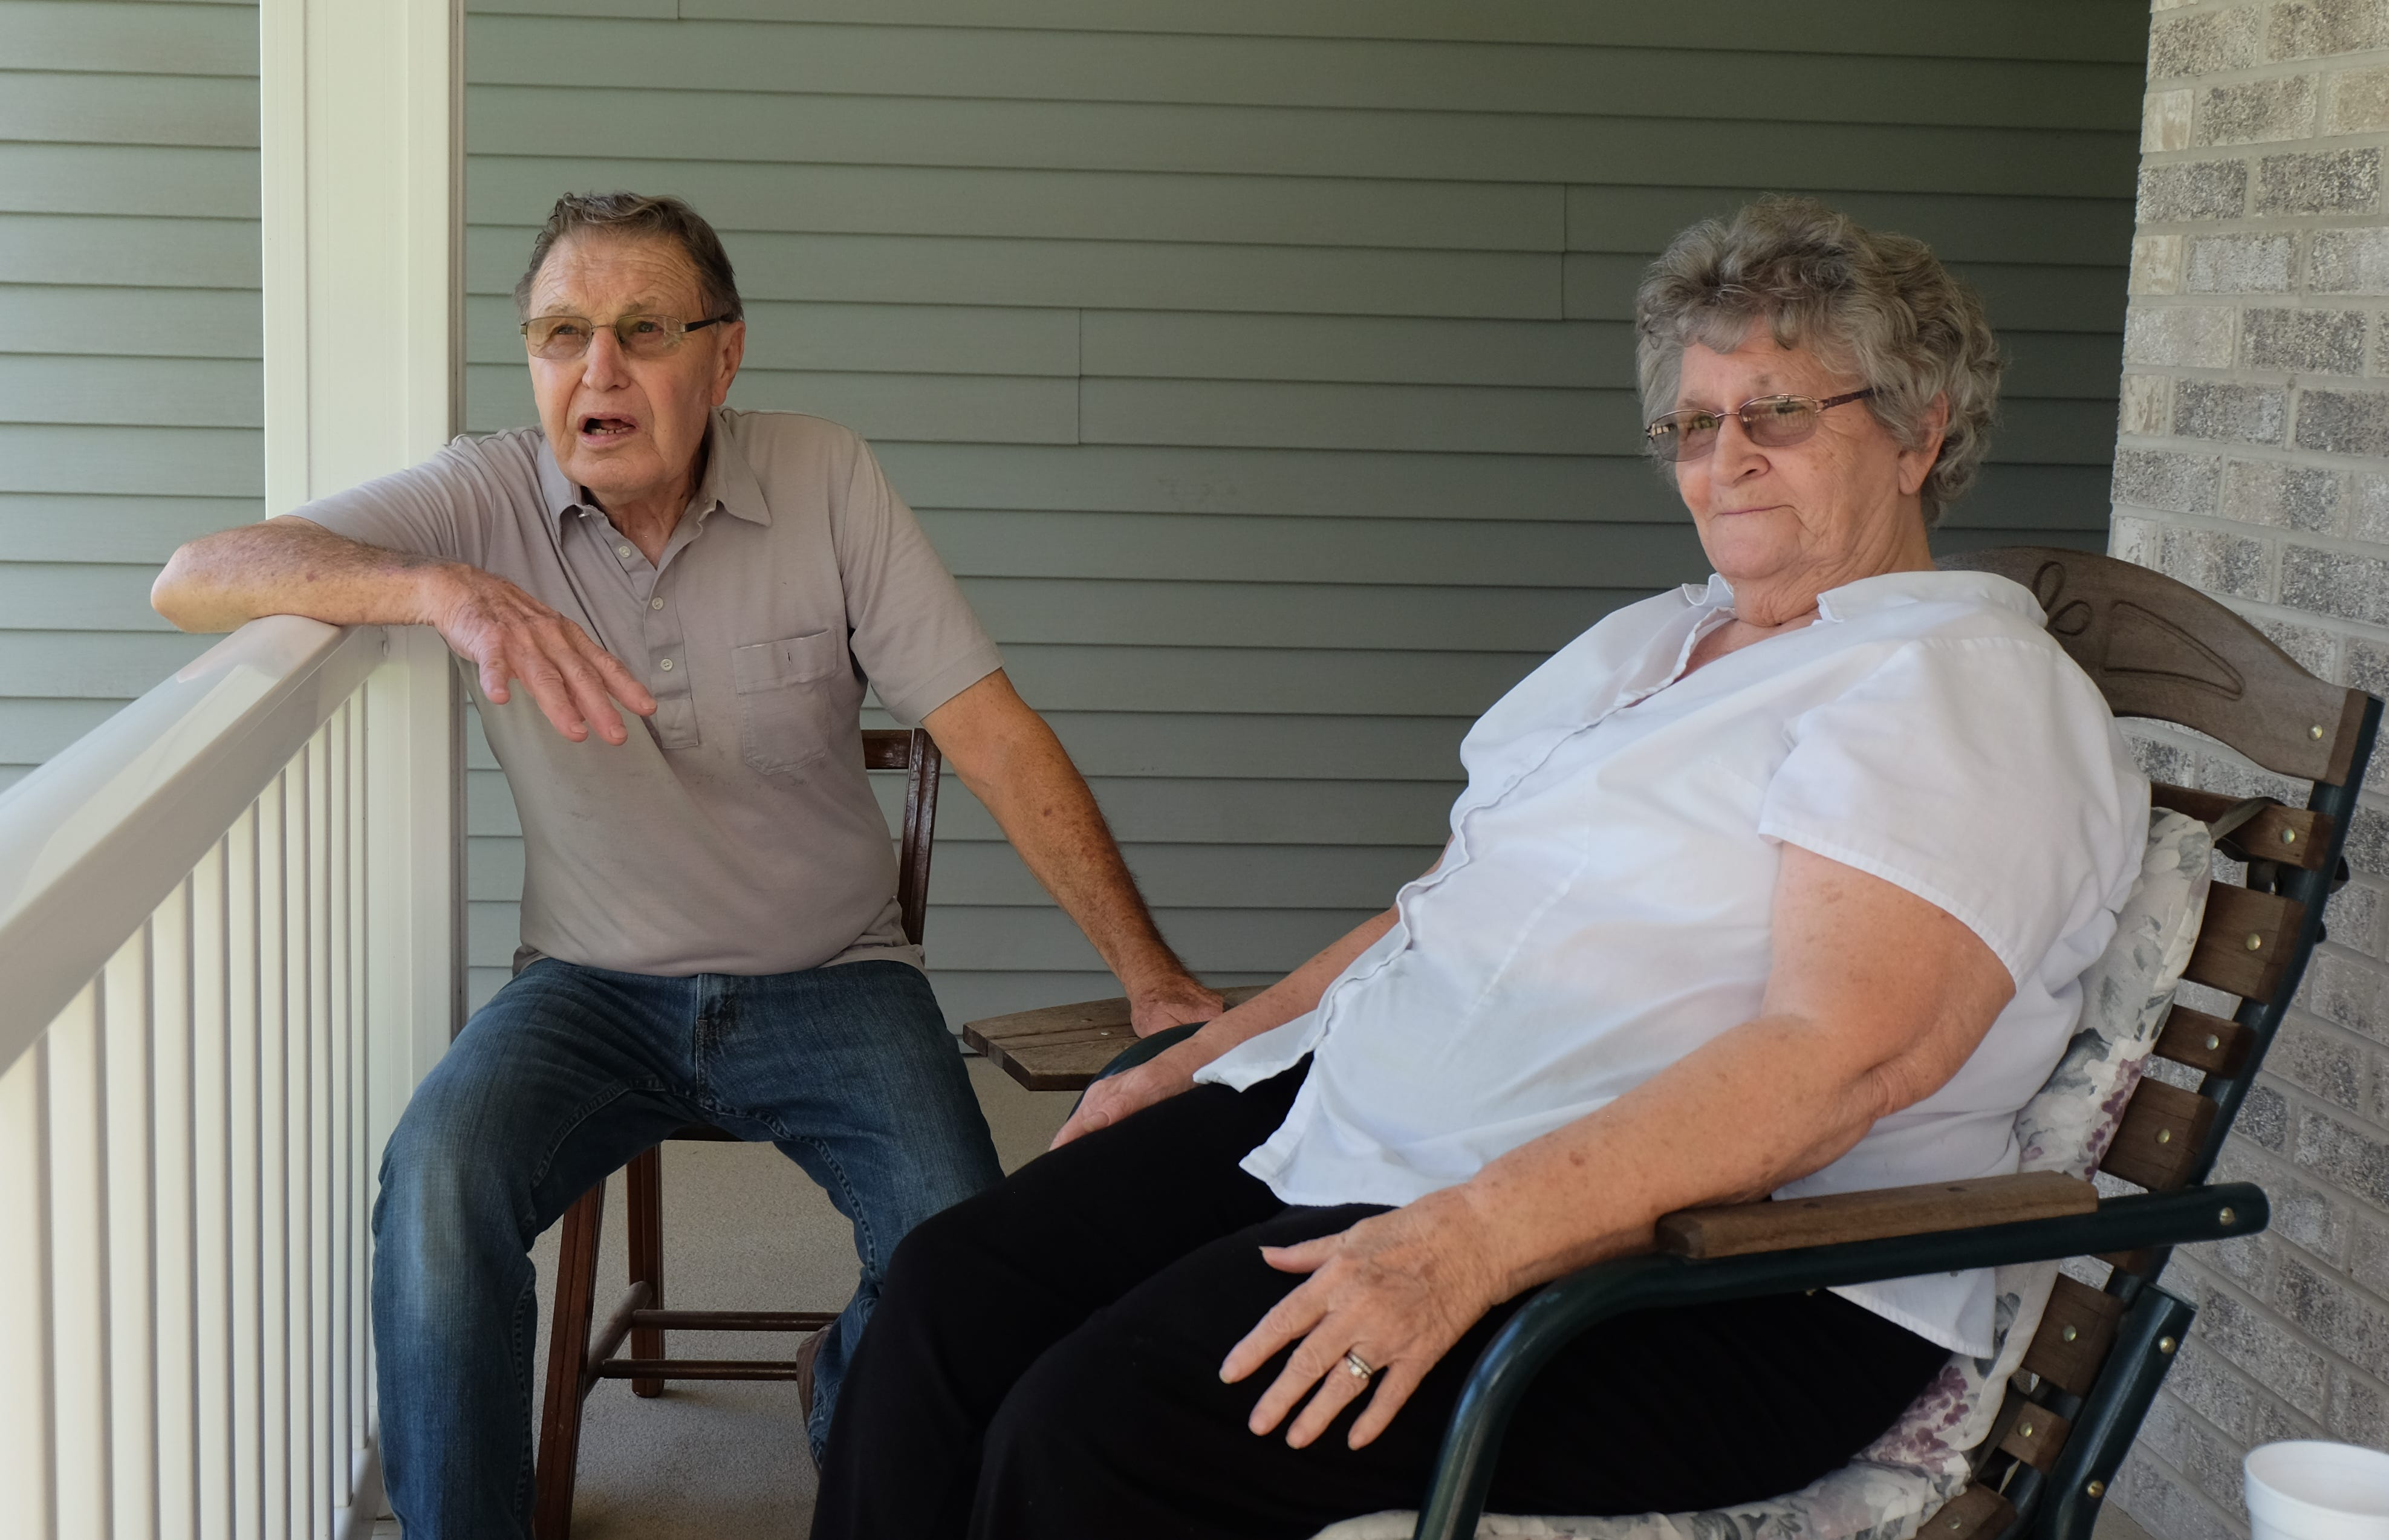 Dan and Nancy Gobush have one tree in their yard, an ash tree they planted themselves. As the Emerald Ash Borer infestation has moved across Iowa, they wondered whether their ash will survive.